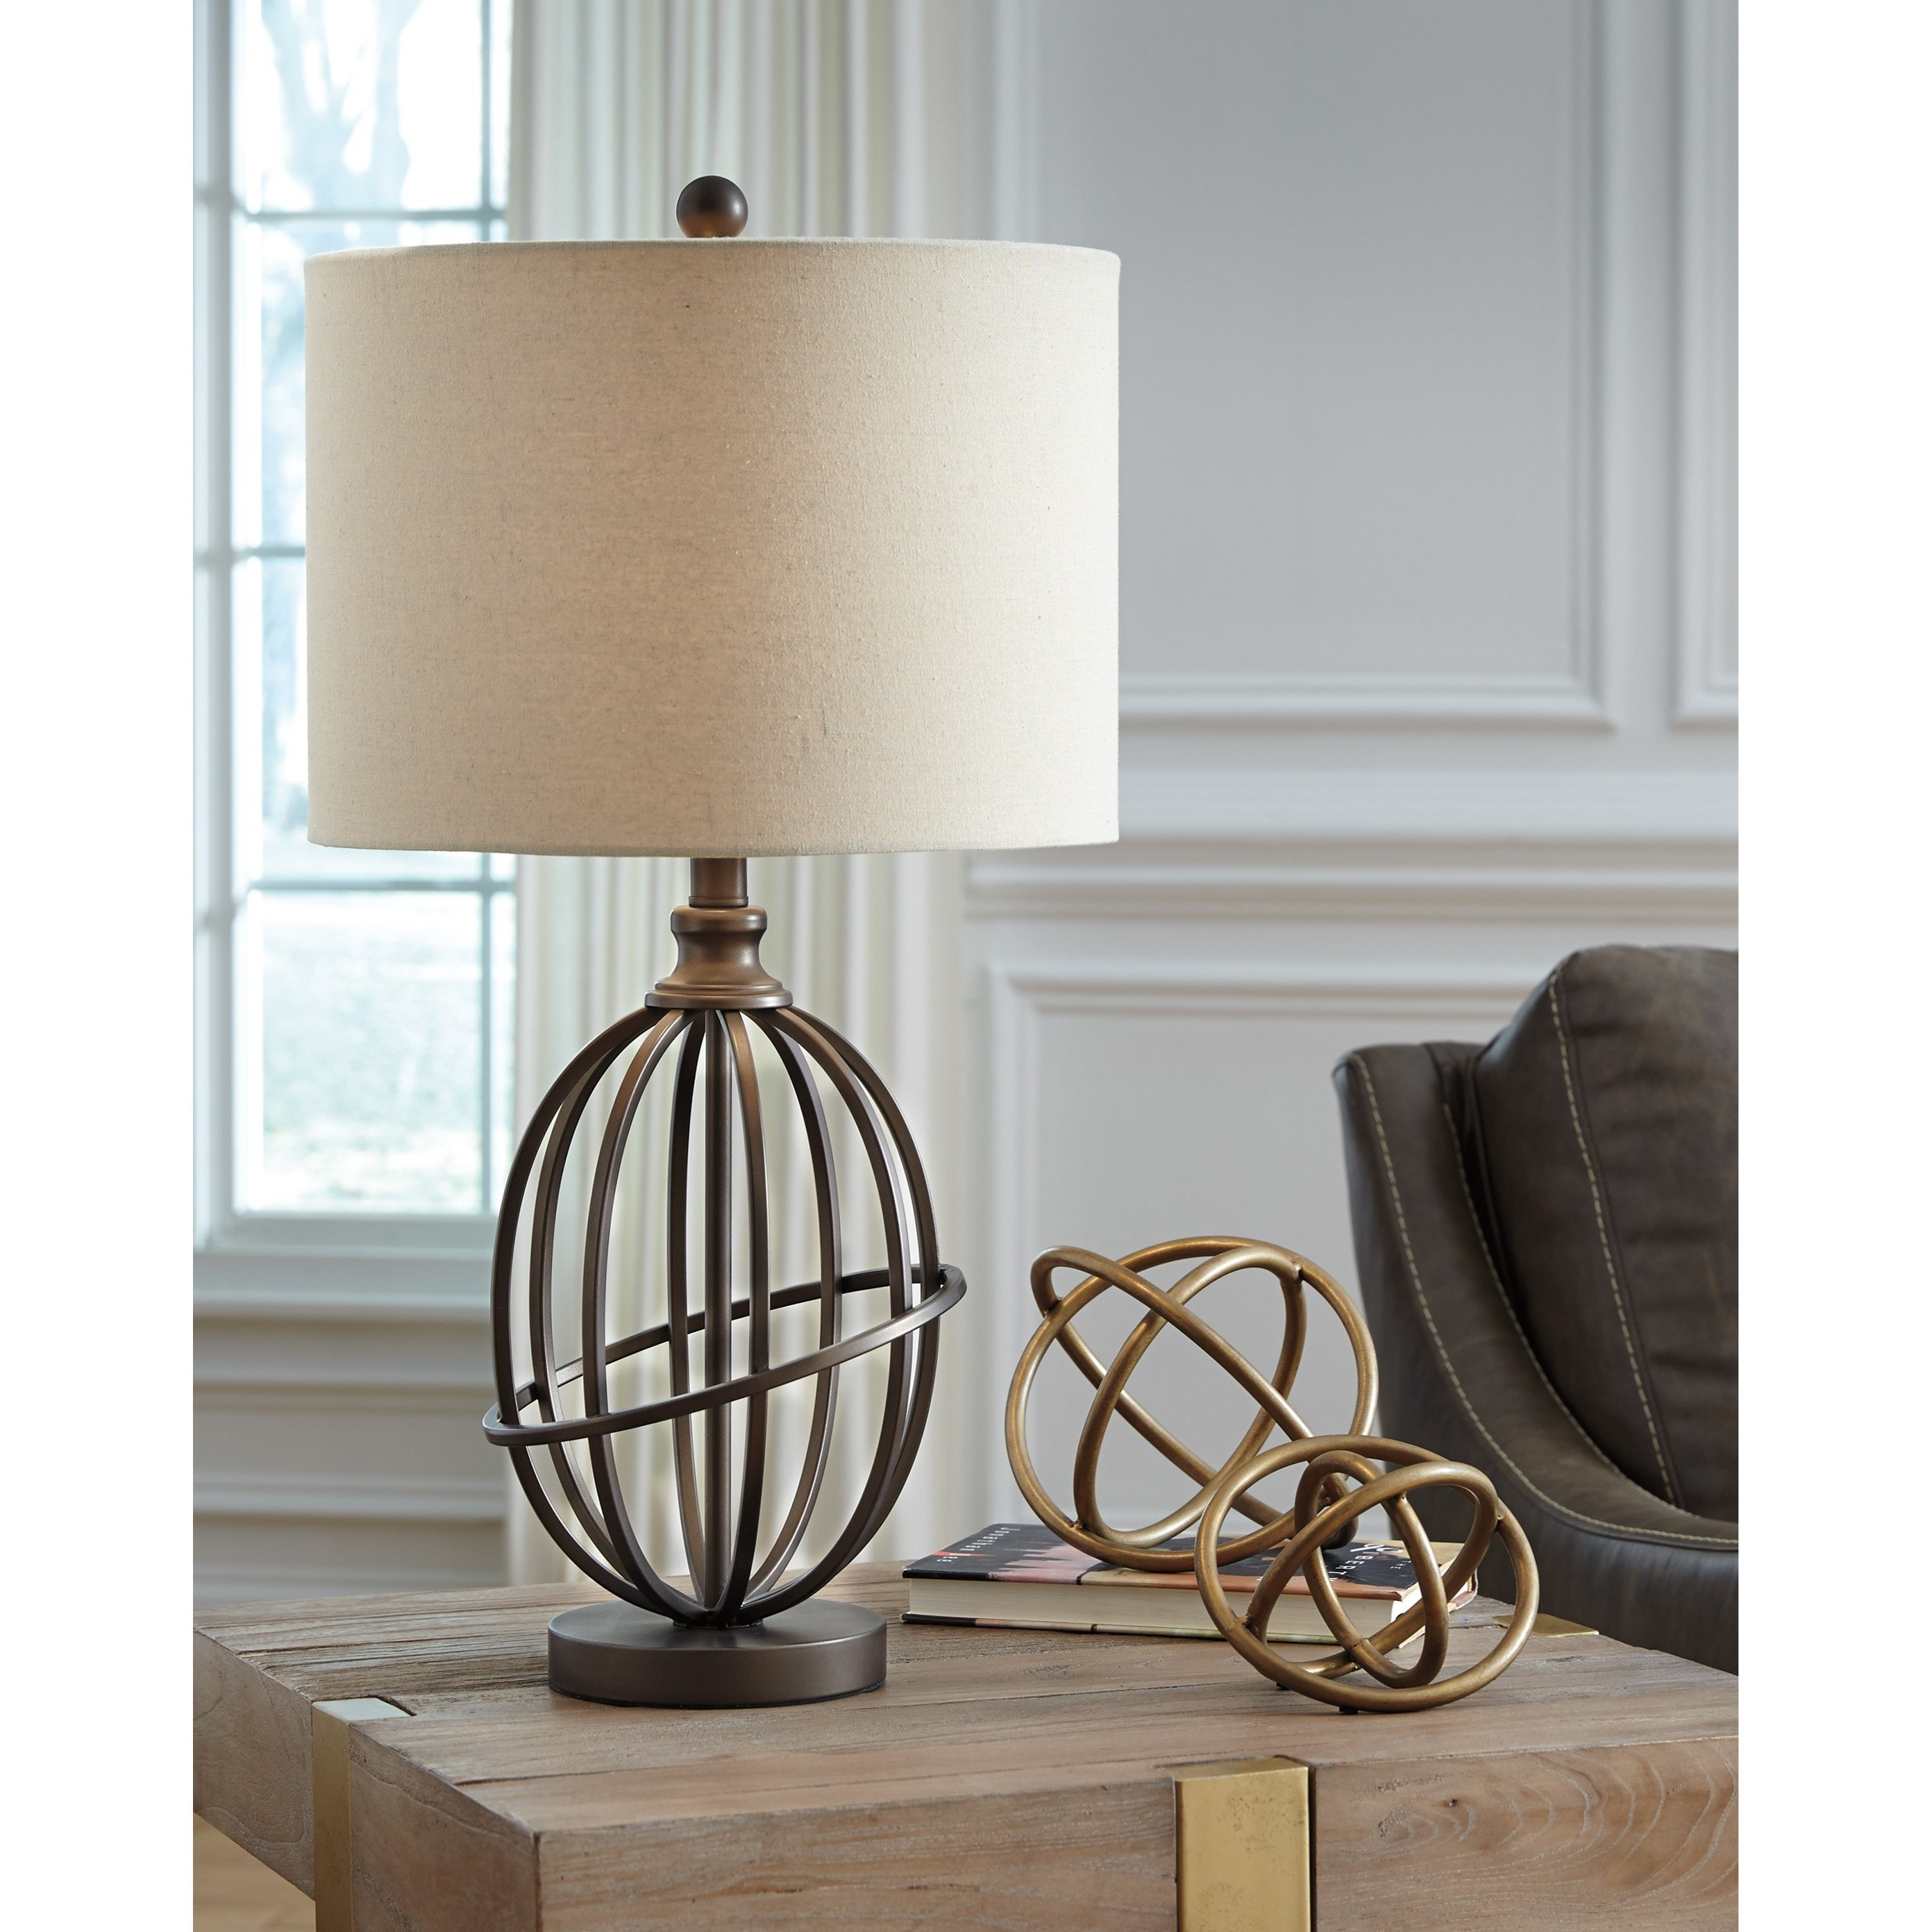 Floor Table Lamps Lamps Vintage Style Manase Bronze Finish Metal Table Lamp By Signature Design By Ashley At Household Furniture